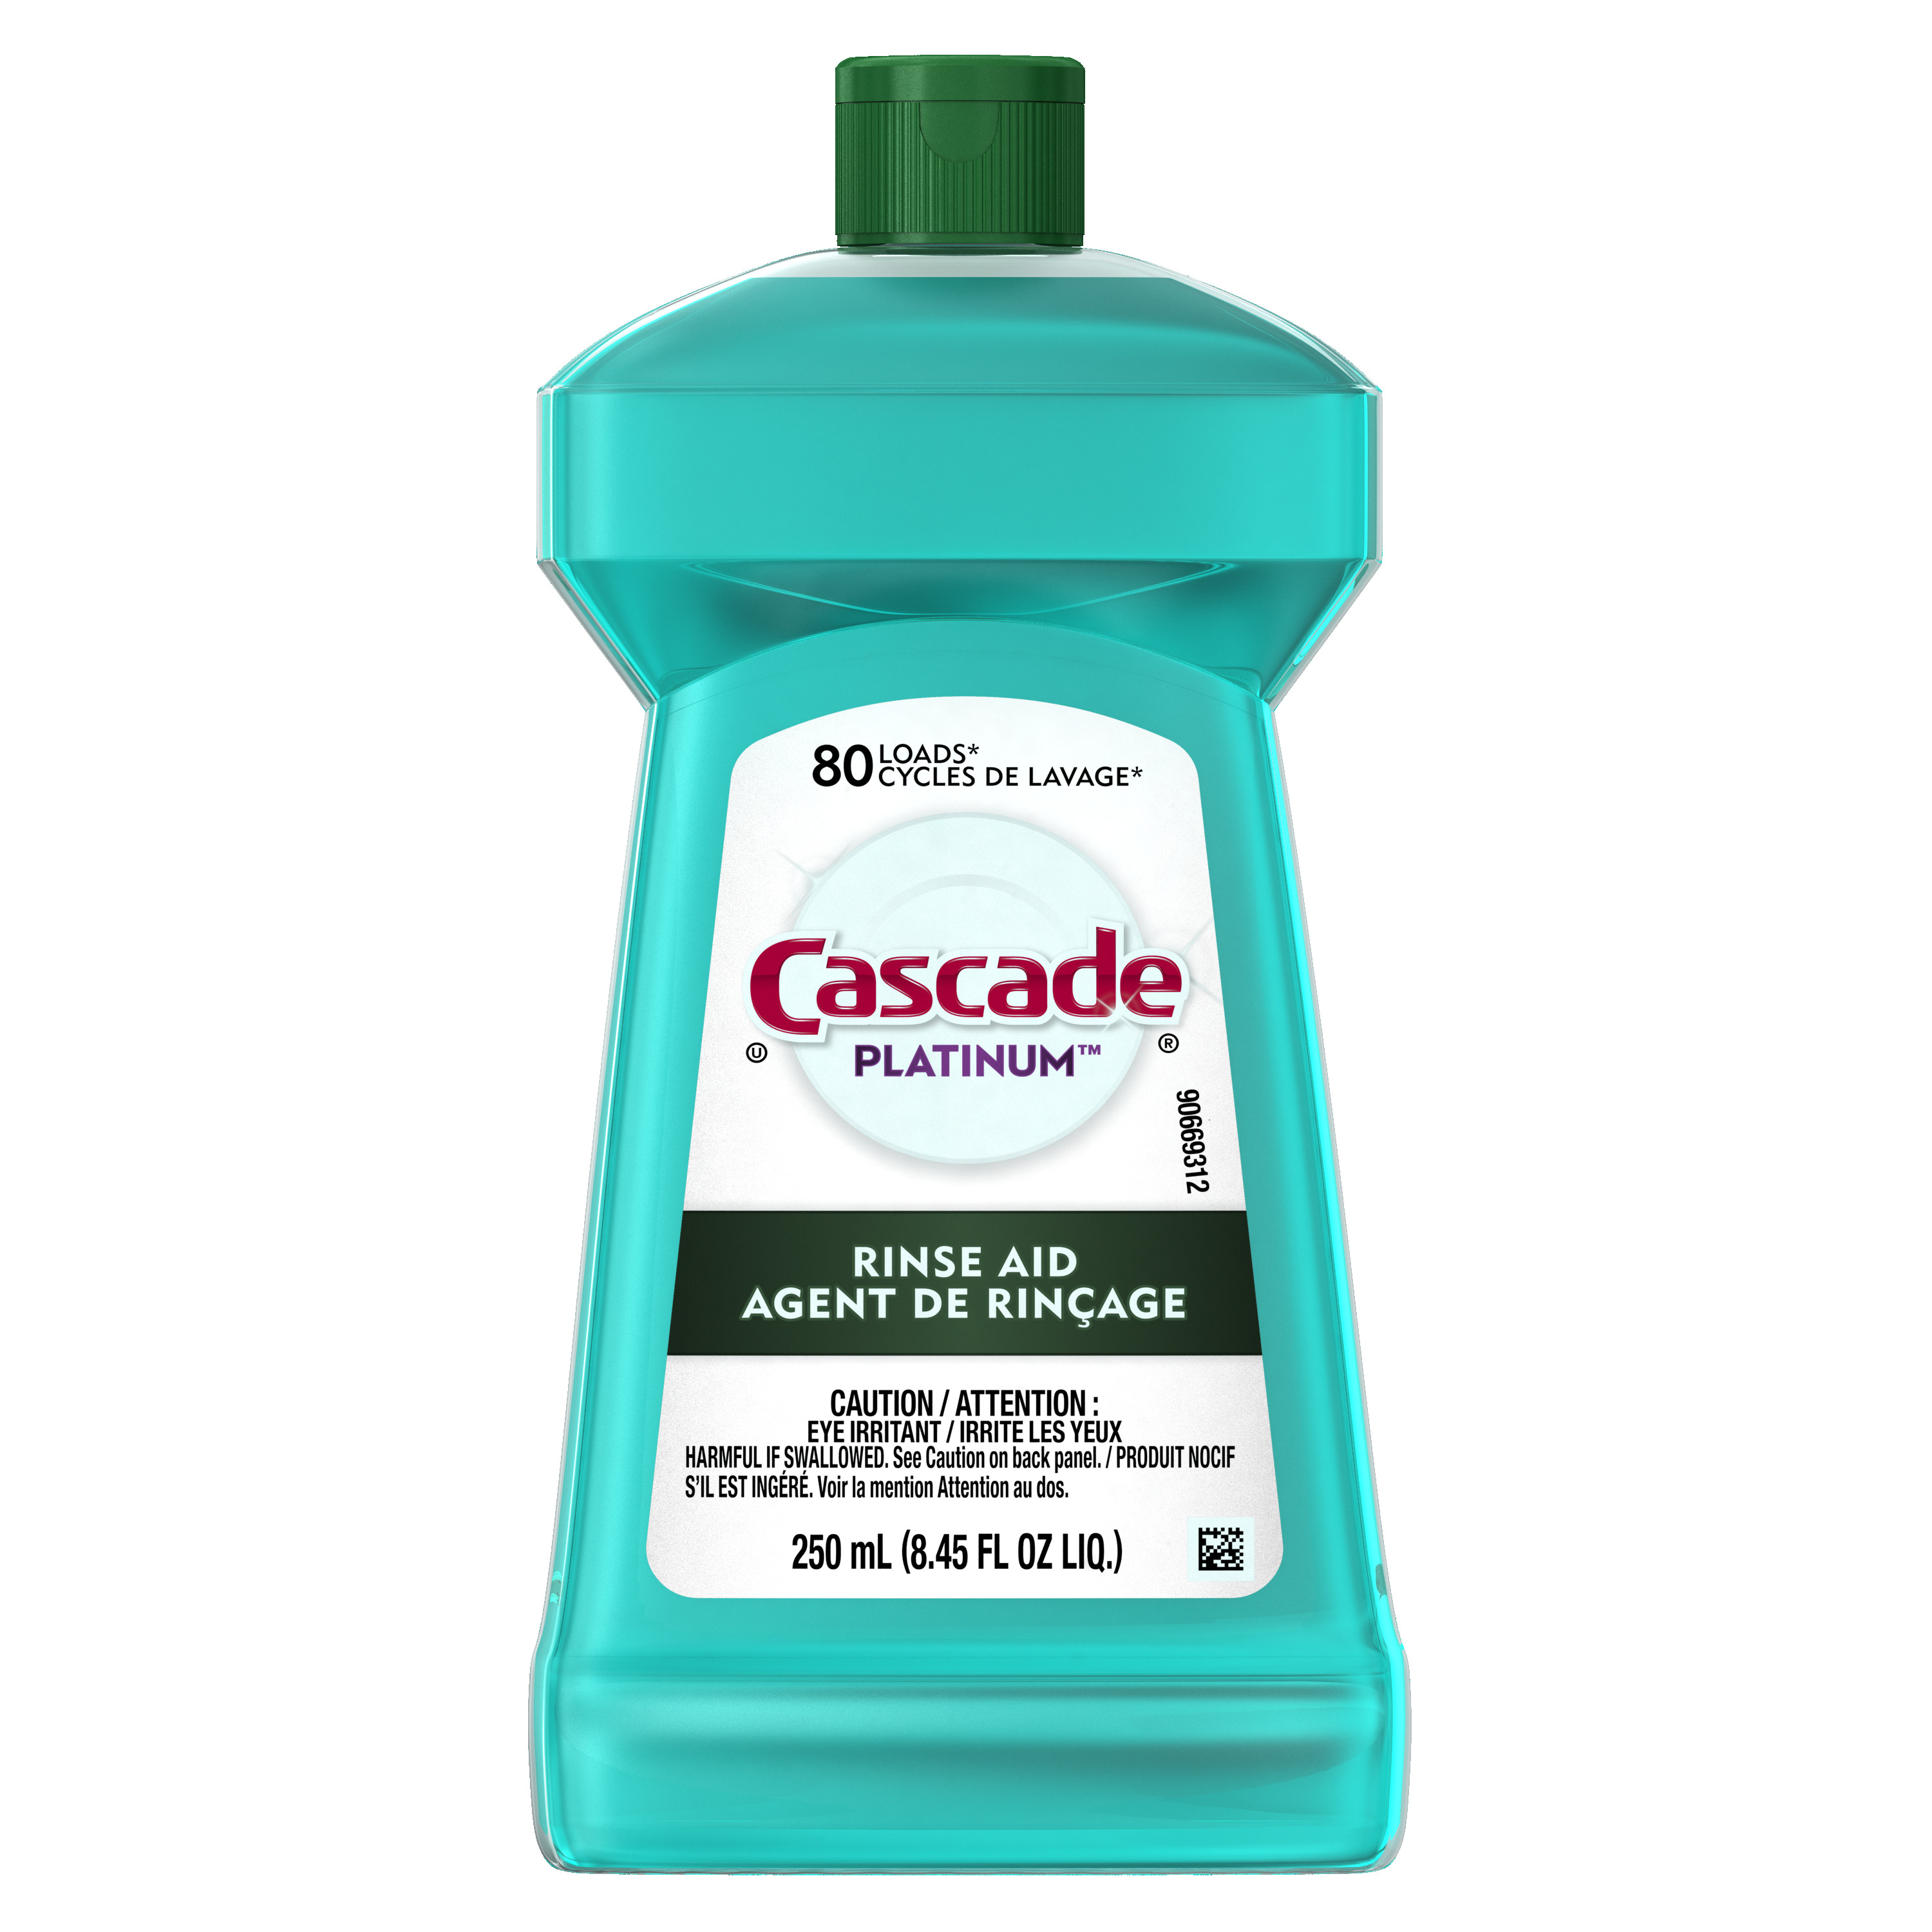 Cascade Platinum Rinse Aid, 8.45 ounces